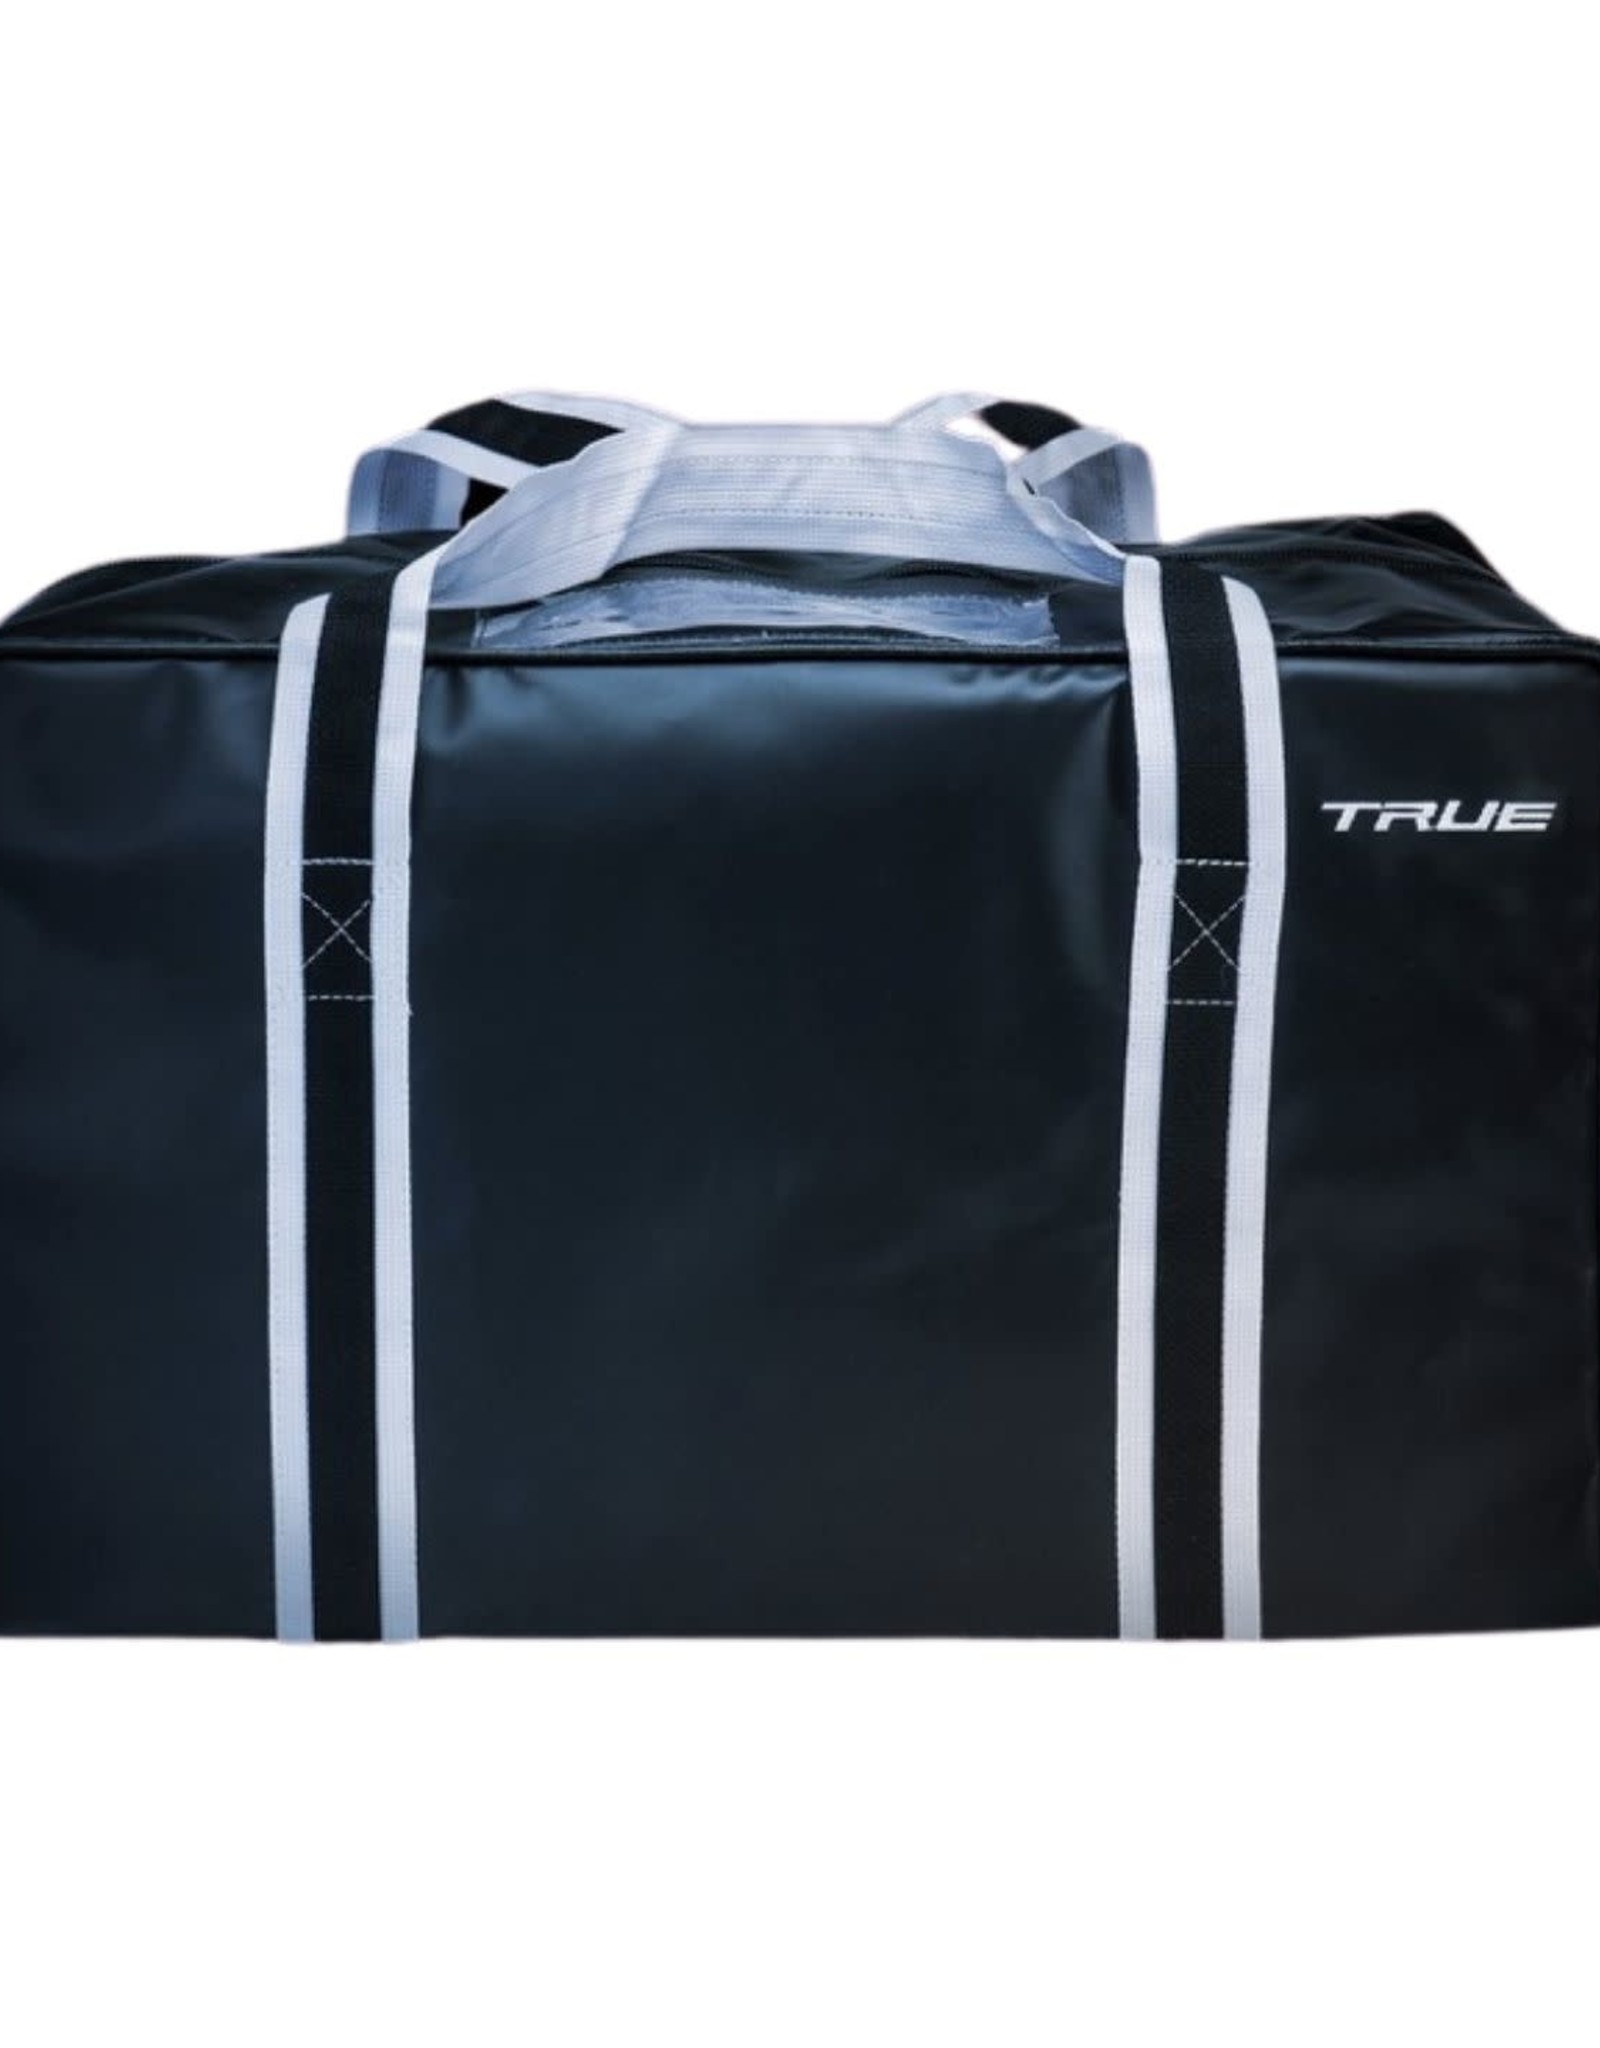 TRUE TRUE Pro Bag (JUNIOR)